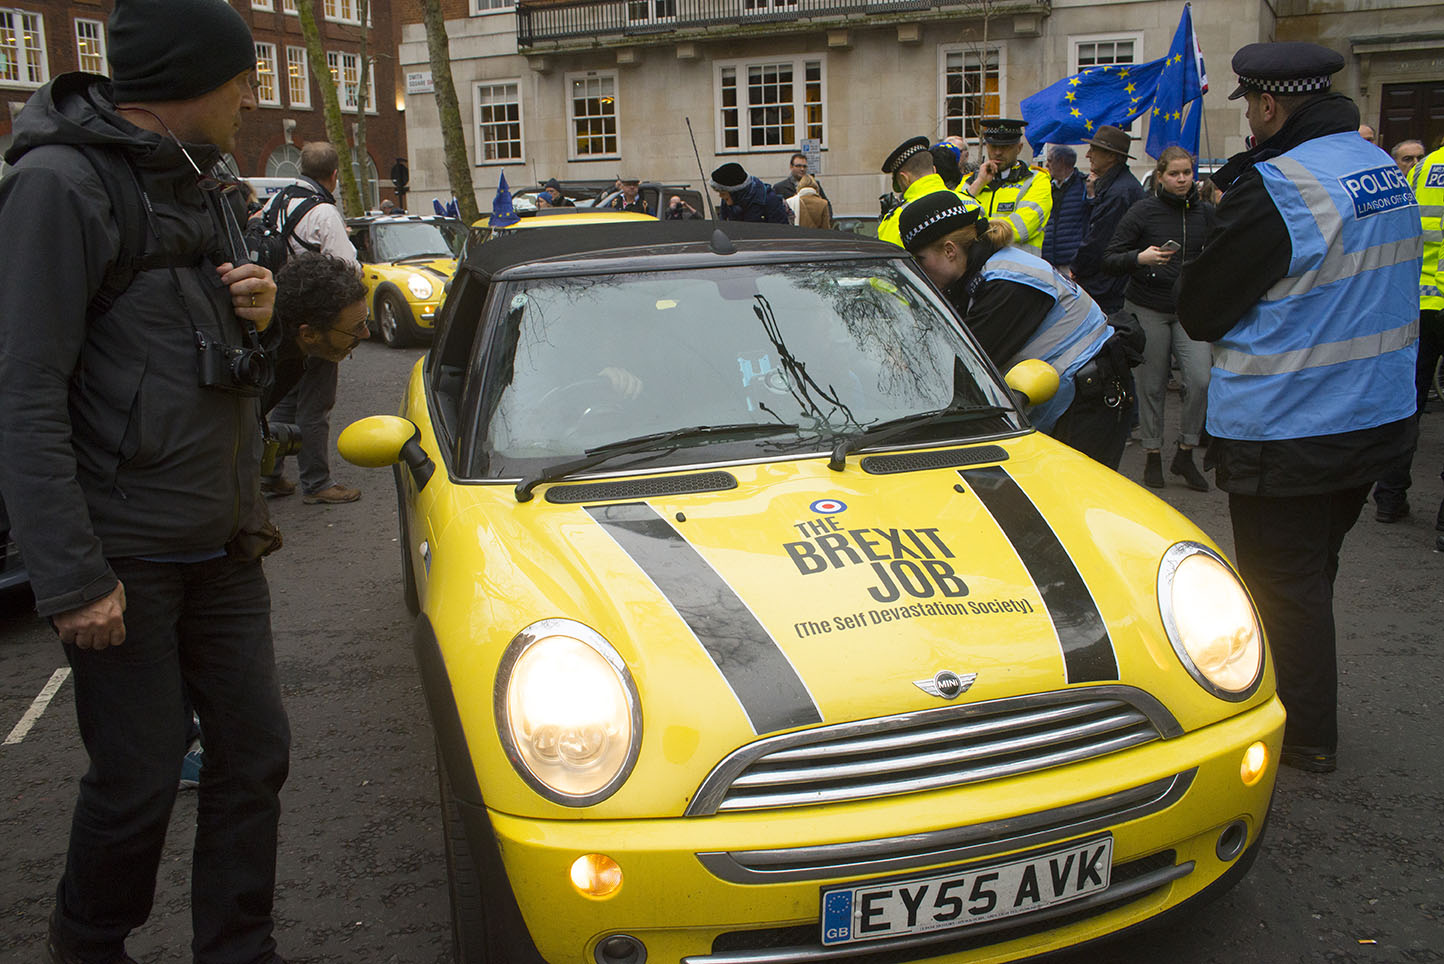 """31 Jan 2020 - London, UK - The EU Flag Mafia minis outside Europe House on the final day of EU membership 2020, """"à bientôt"""" (see you soon) procession from Downing Street to Europe House."""